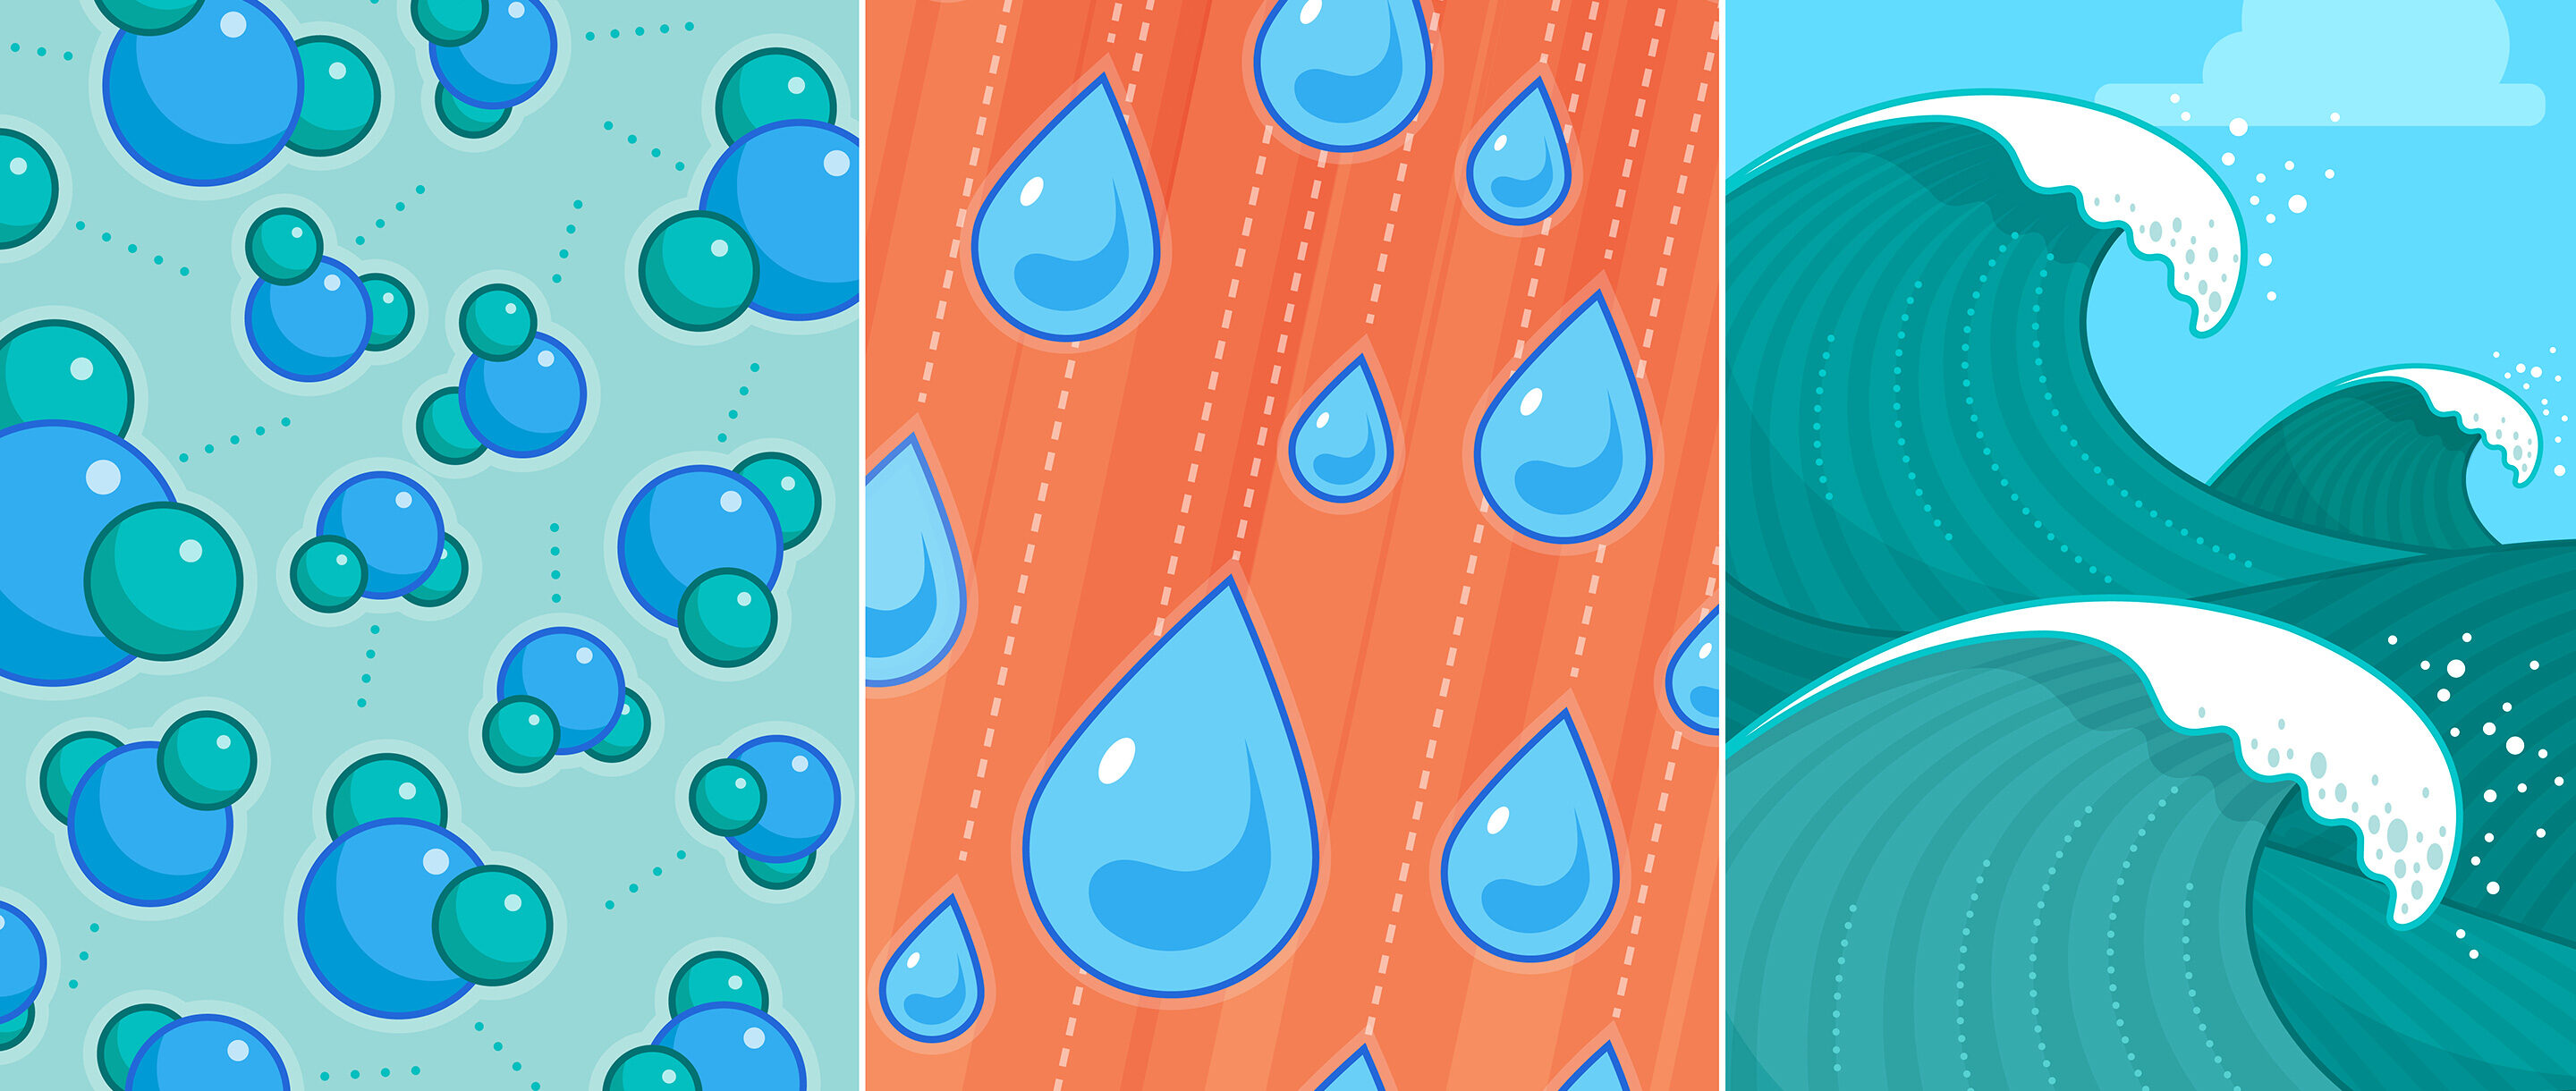 water molecules, droplets and a wave